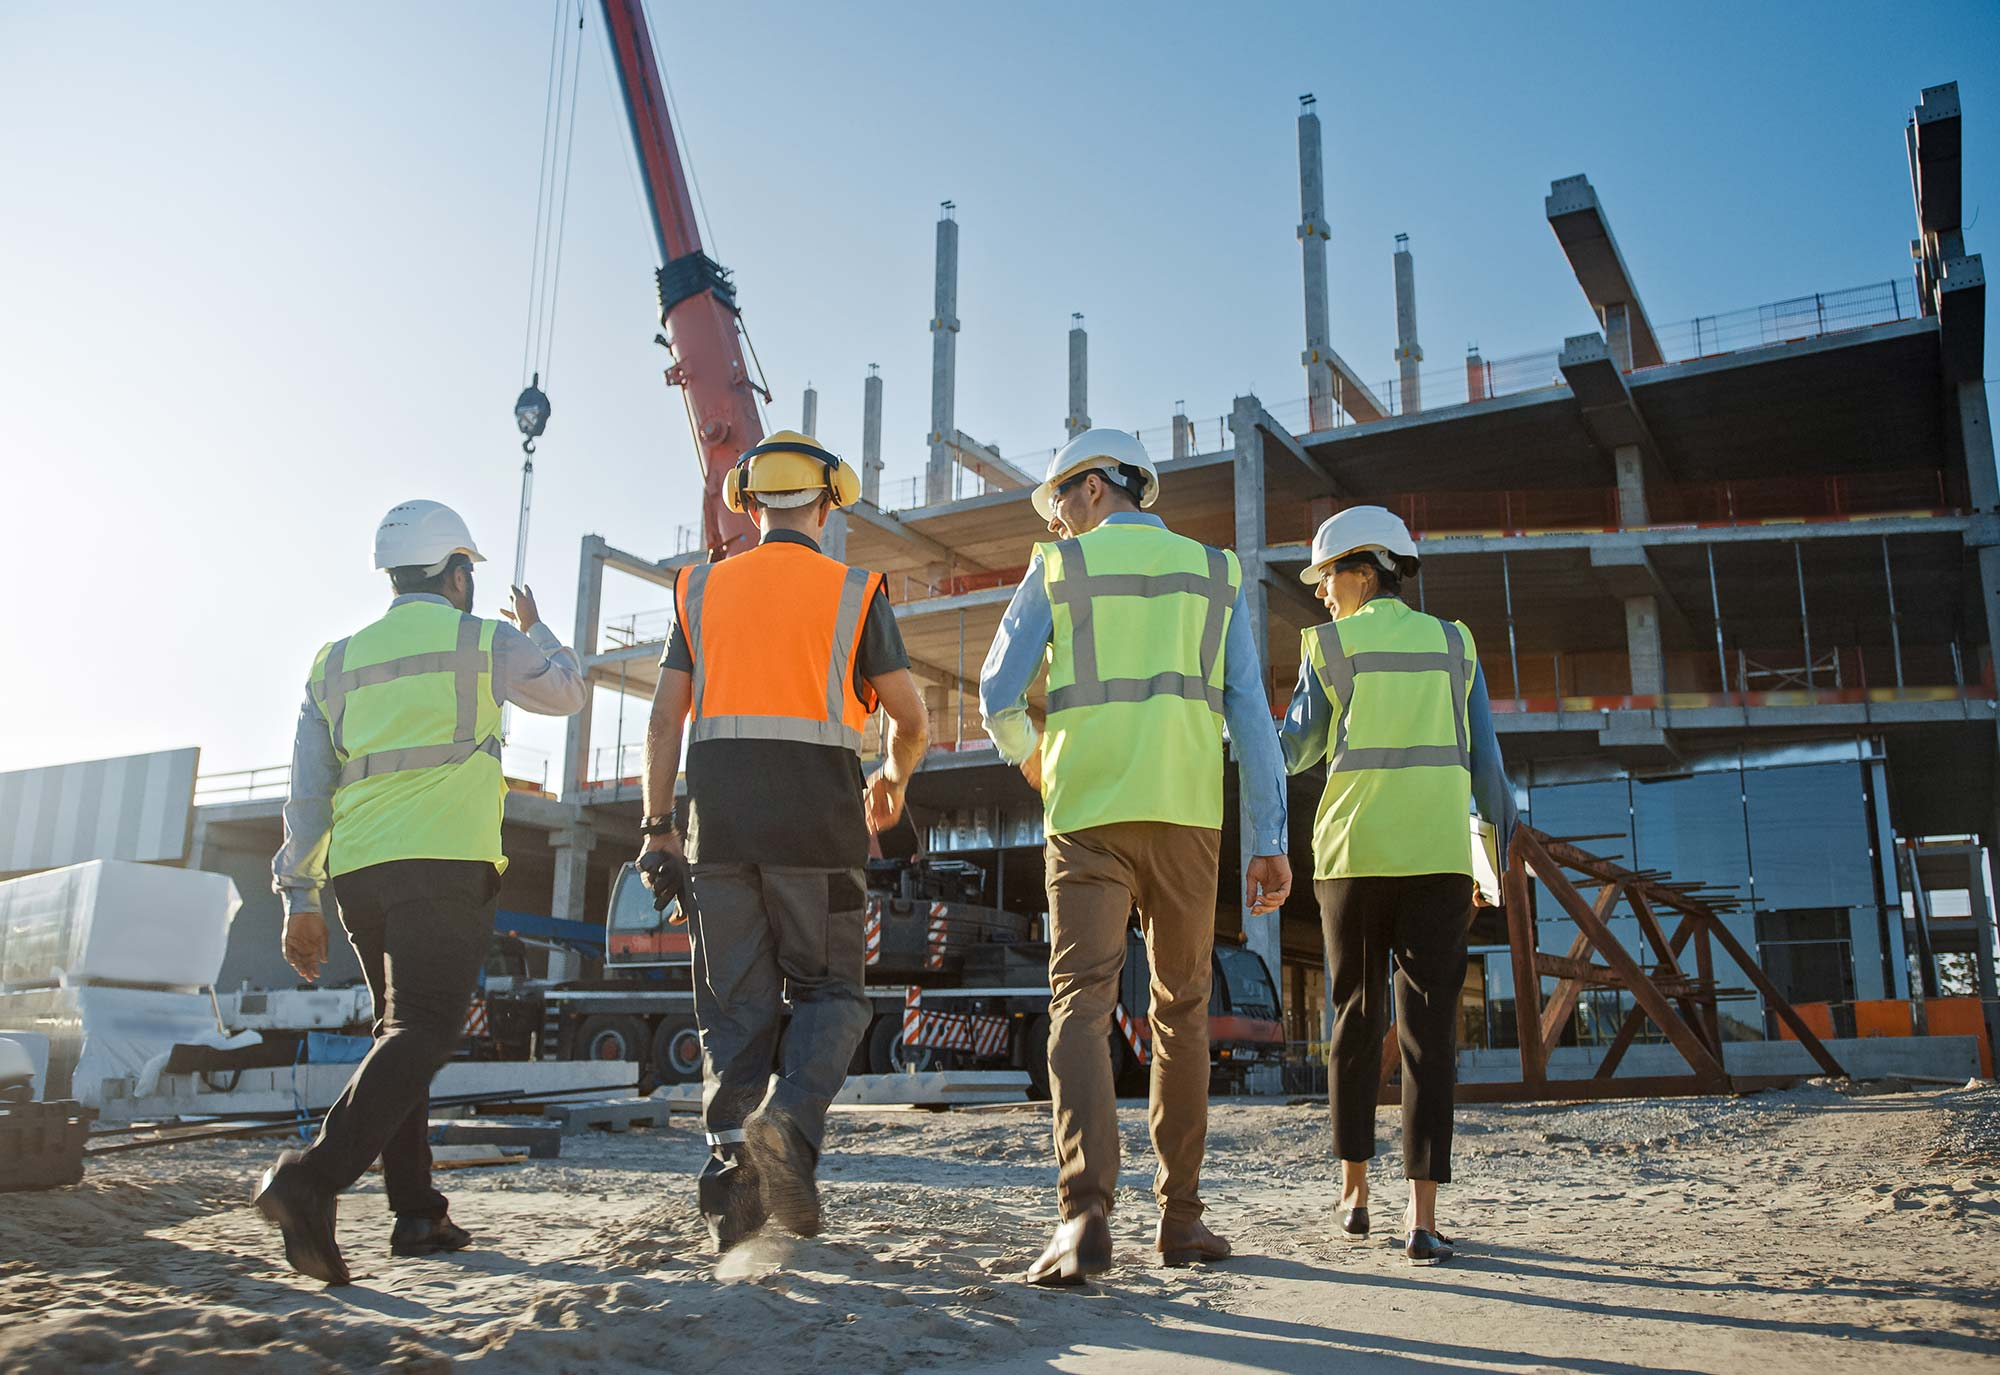 Three men and a women wearing high visability jackets and hard hats walk up to a construction site